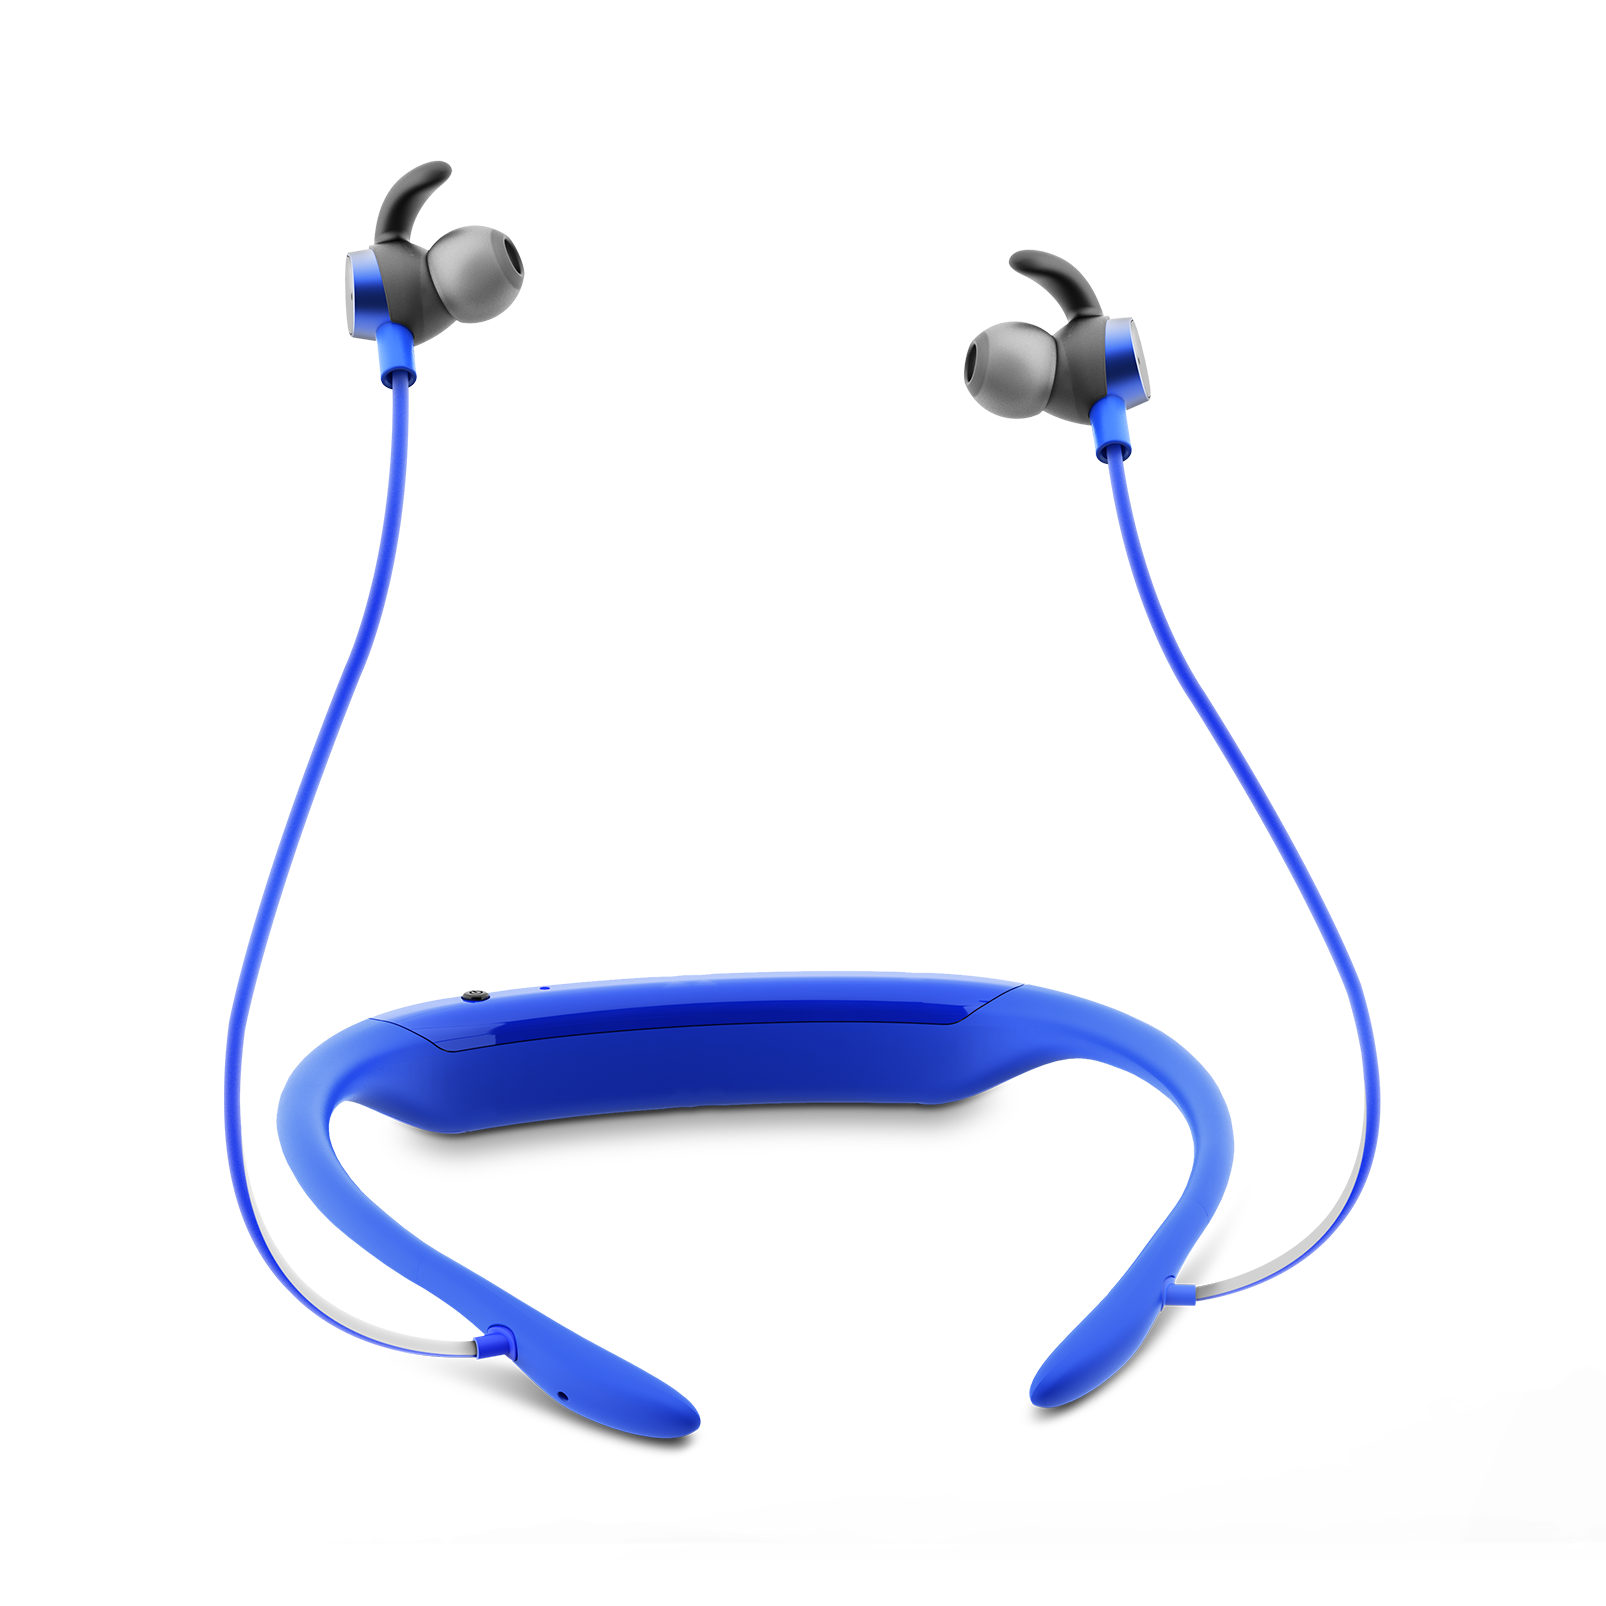 JBL Reflect Response BT Blue: In-ear Bluetooth Gesture Control Sport Earphones